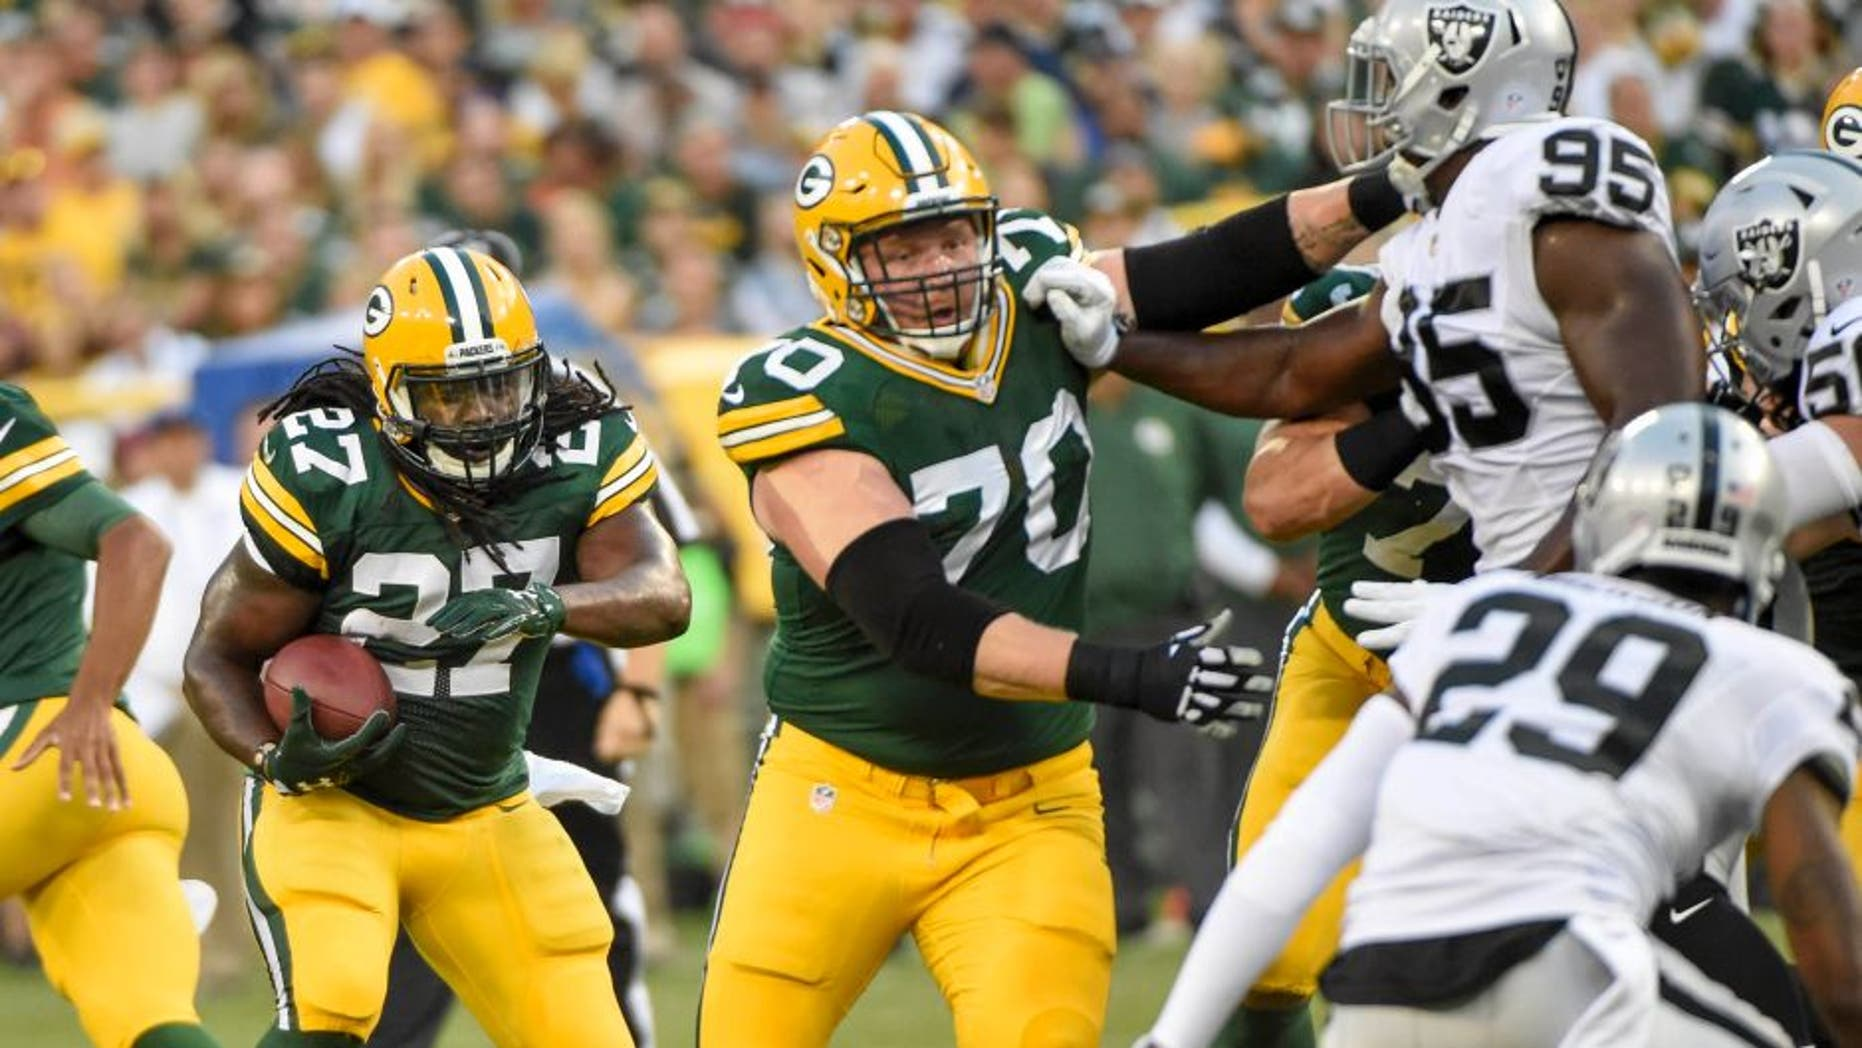 Aug 18, 2016; Green Bay, WI, USA; Green Bay Packers running back Eddie Lacy (27) follows a block by guard T.J. Lang (70) in the first quarter during the game against the Oakland Raiders at Lambeau Field. Mandatory Credit: Benny Sieu-USA TODAY Sports